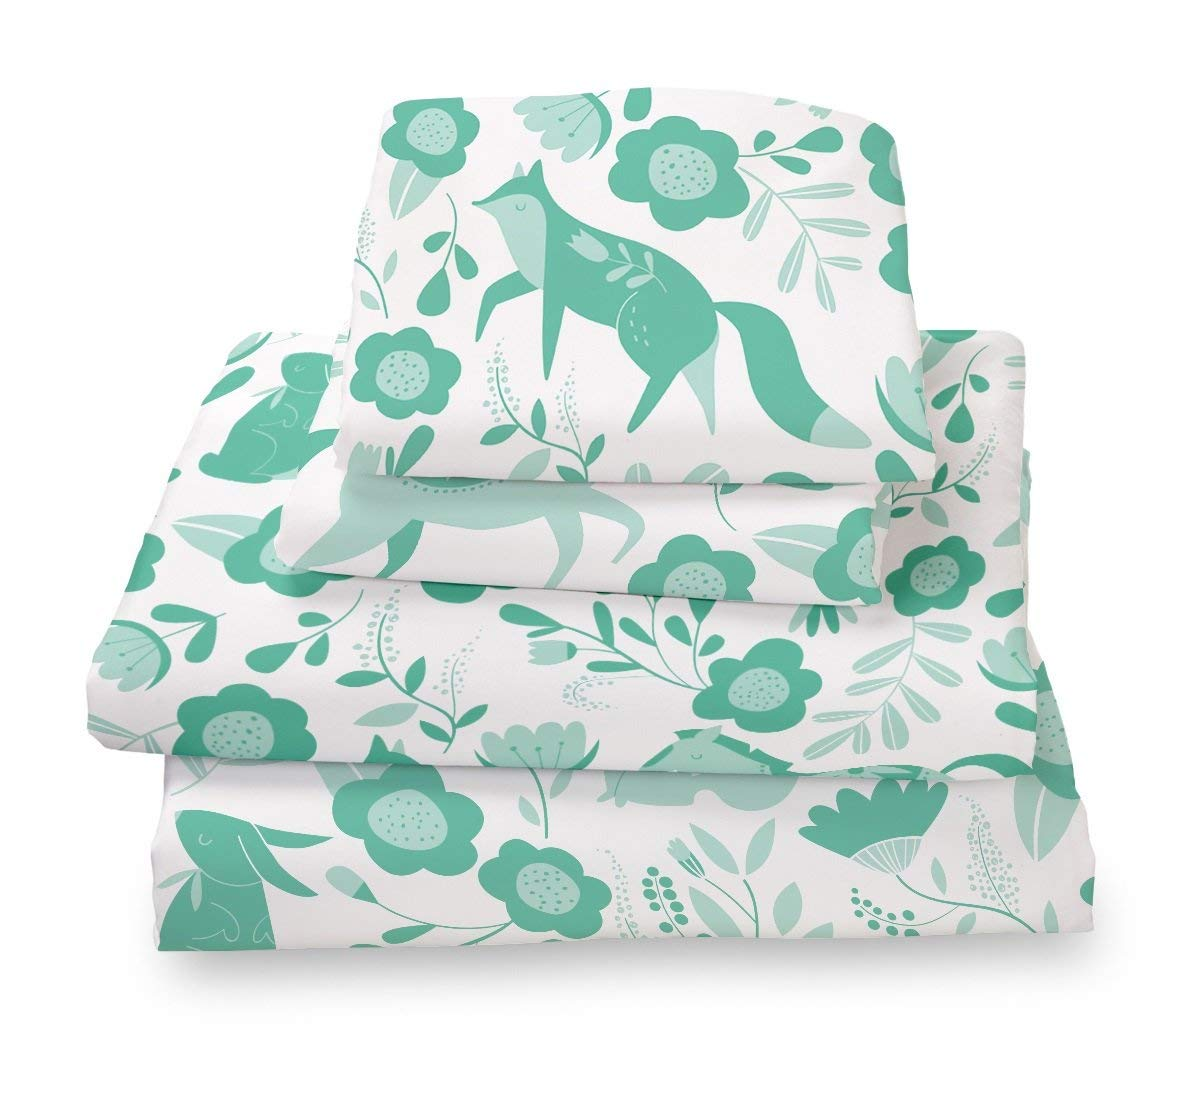 Image of Folktale Forest Animals Microfiber Sheet Set - What Are Microfiber Sheets